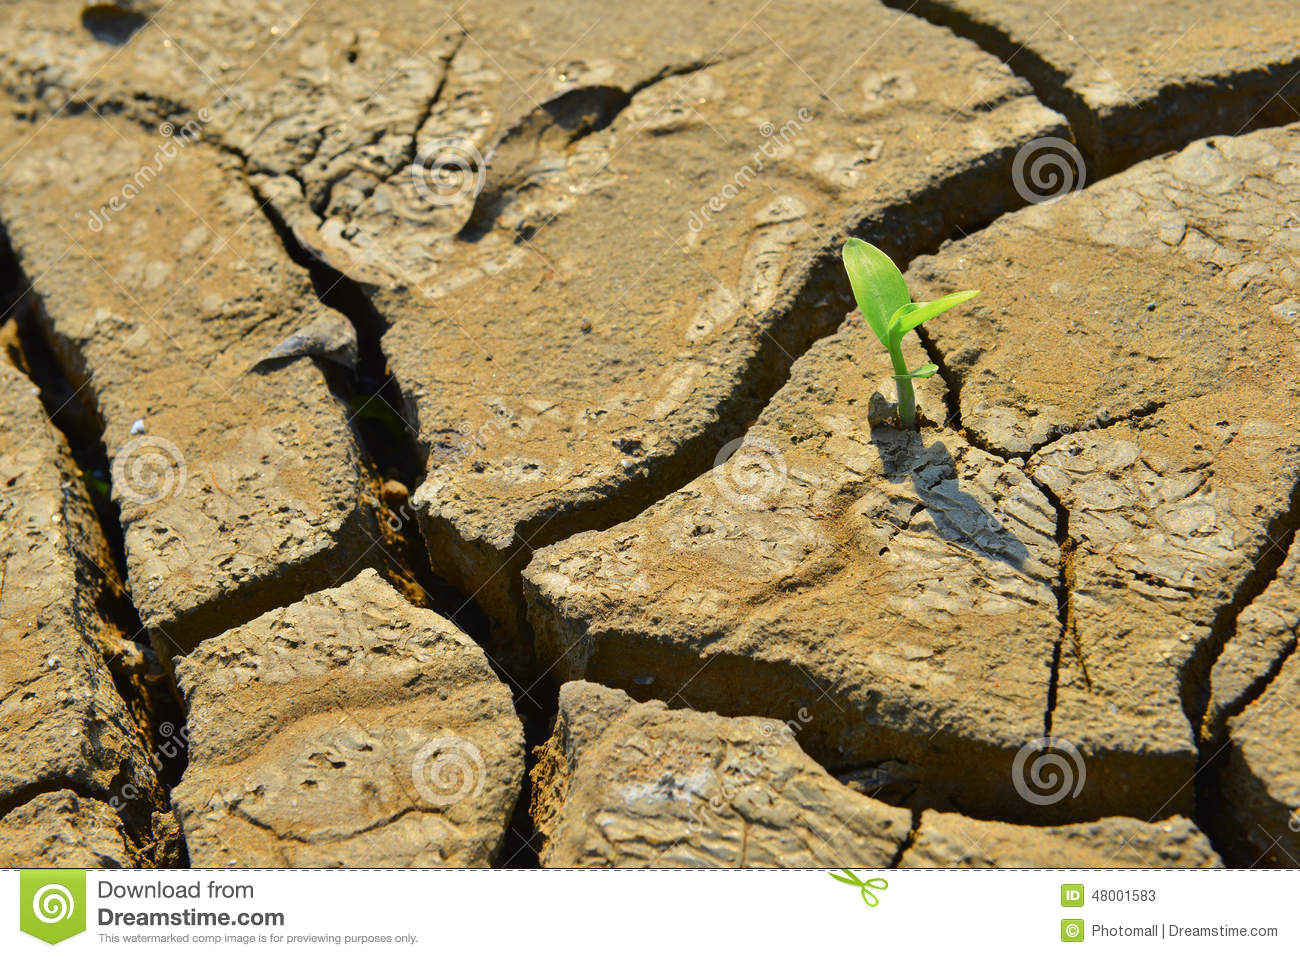 Dry cracked land green shoot,pollution land adversity heal the world new hope life protect environment